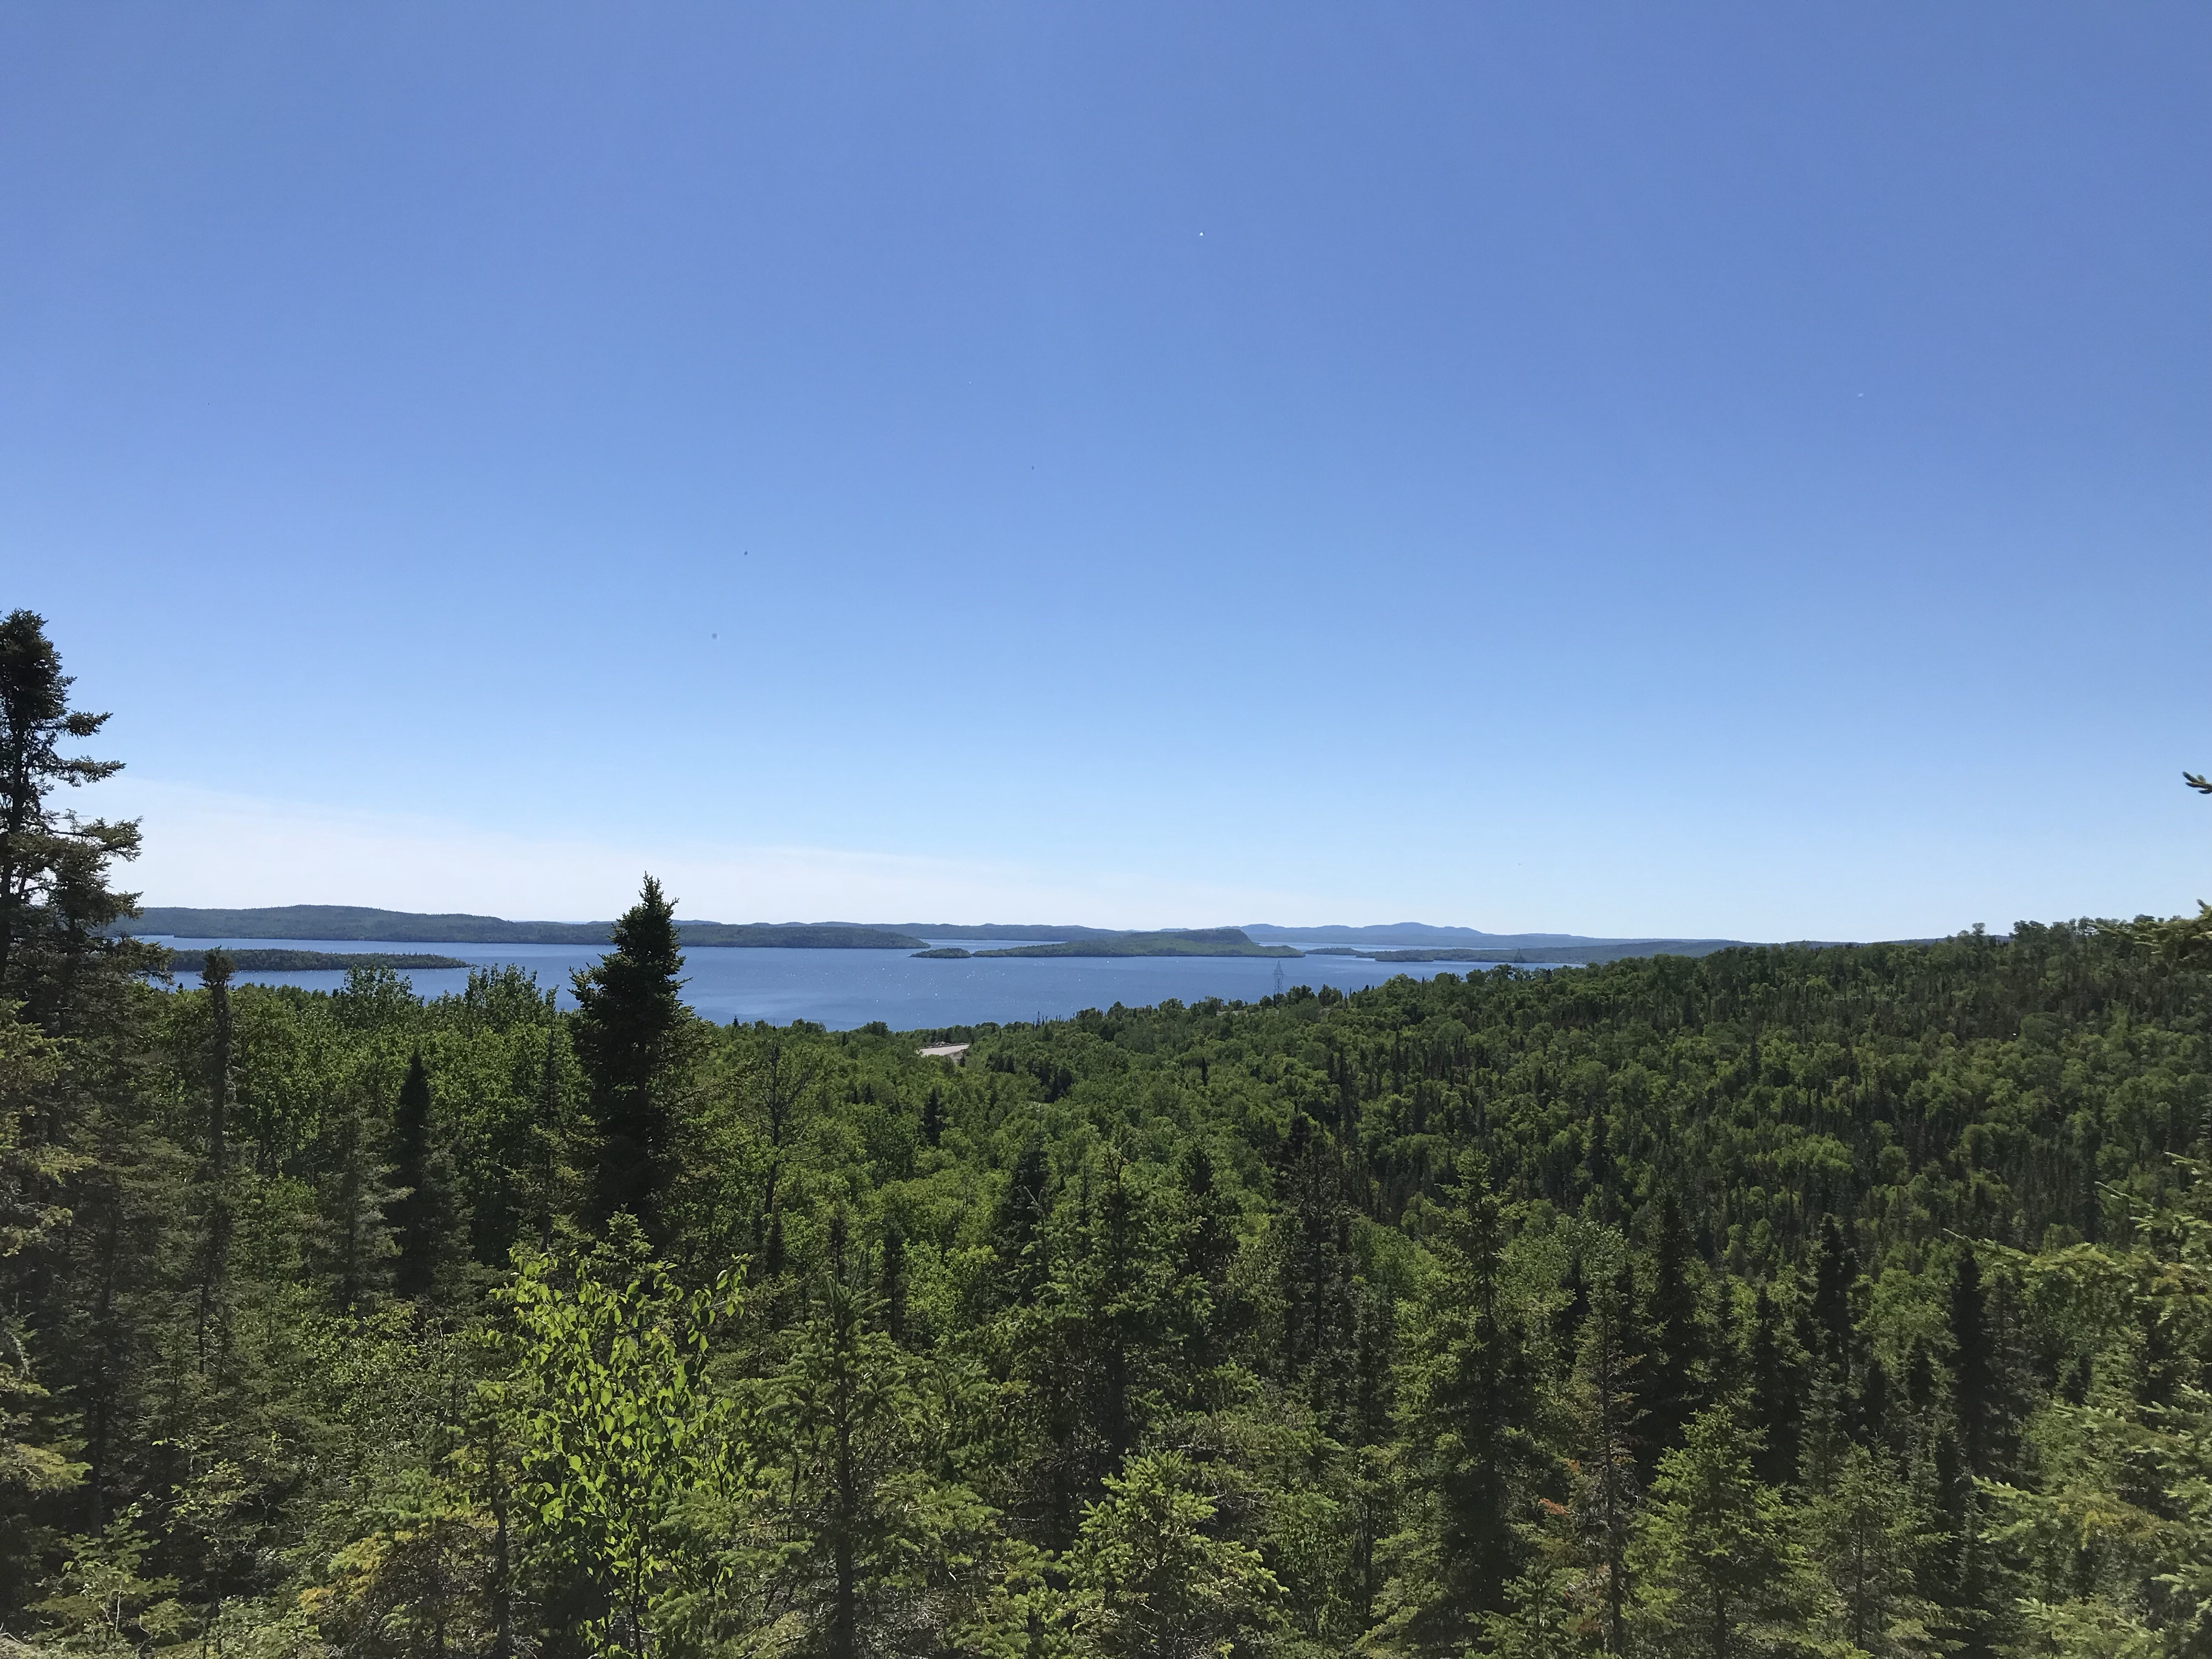 A view of Nipigon Bay from atop a hill with islands in the background